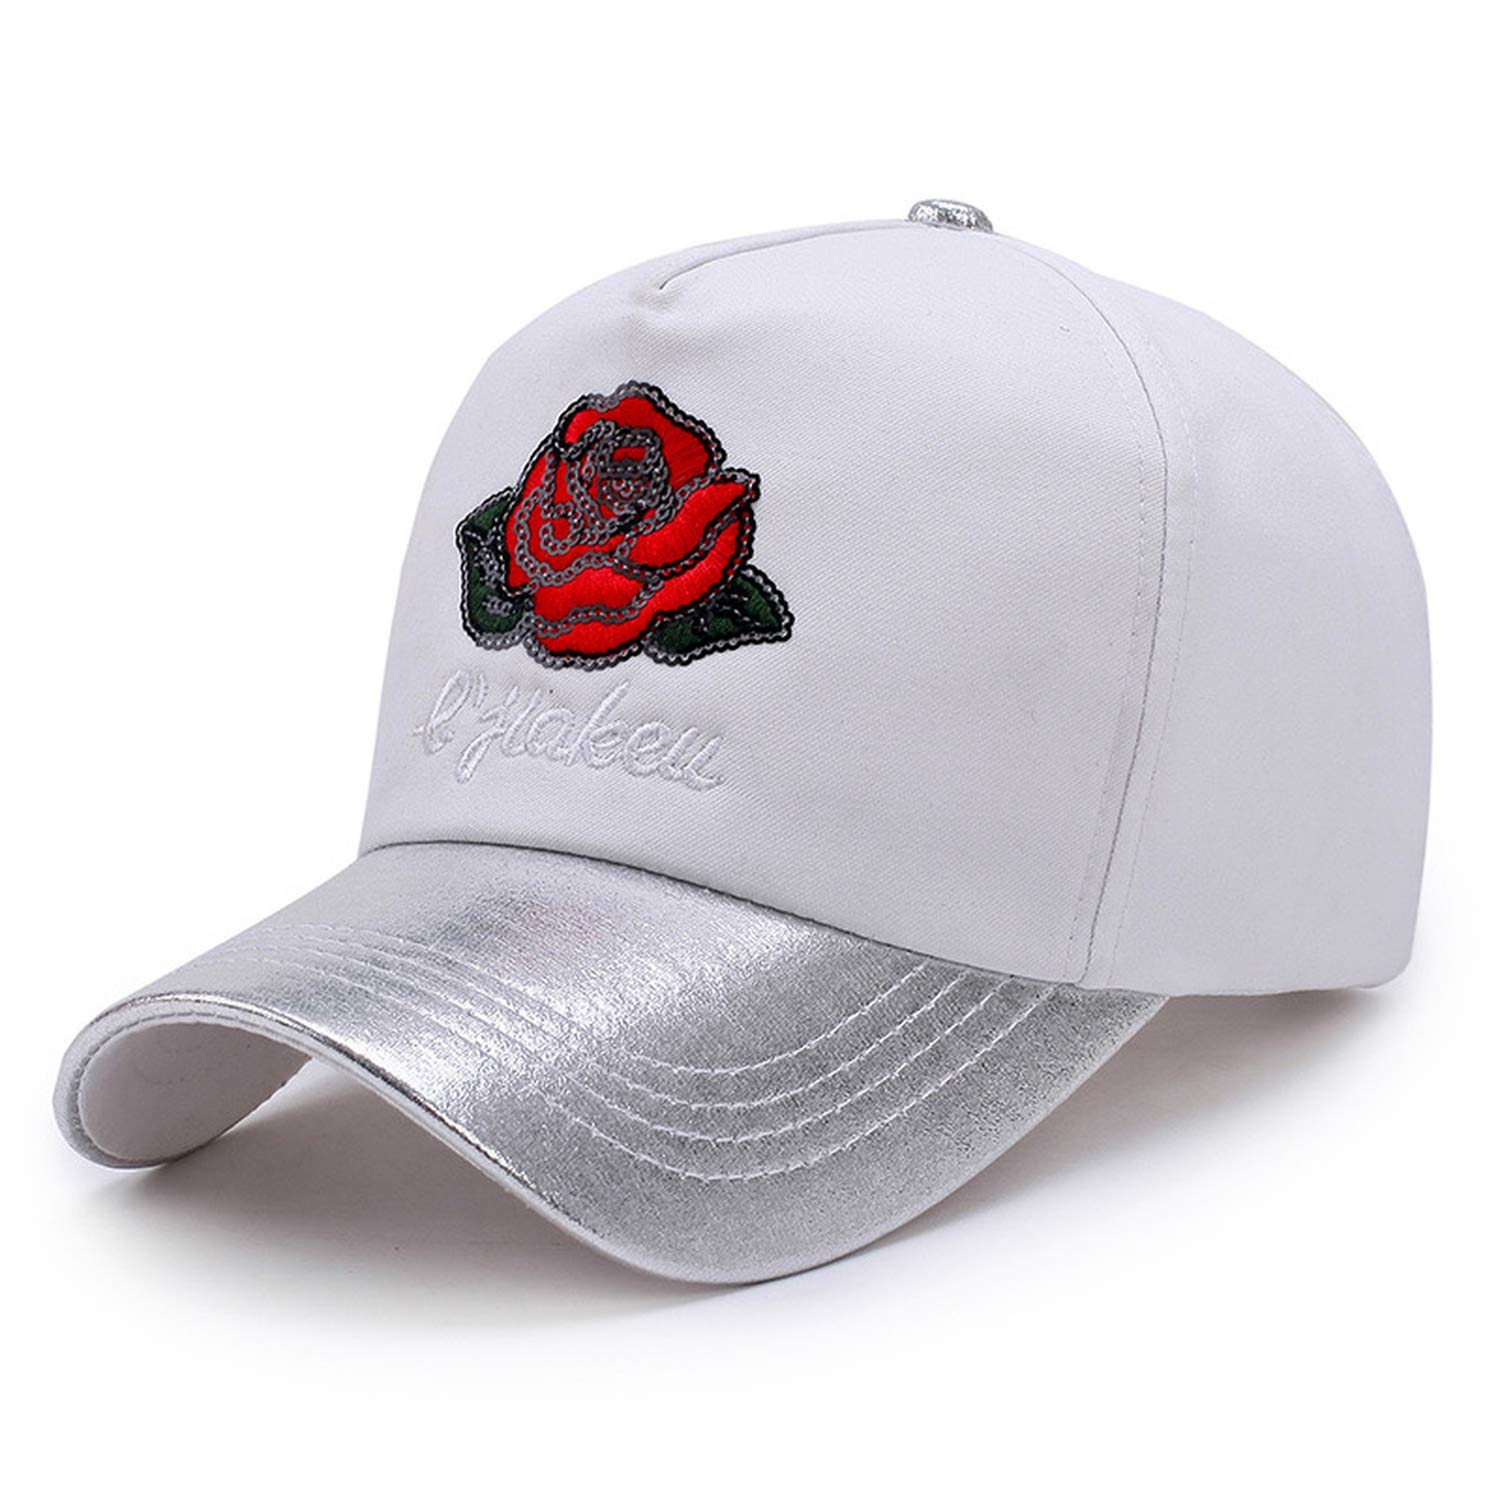 Amazon.com: LONIY Women Lady Embroidery Sequin Rose Baseball Cap Hat Peaked Cap 5 Panel Snapback Gorras Outdoor Sunhat Leisure: Clothing